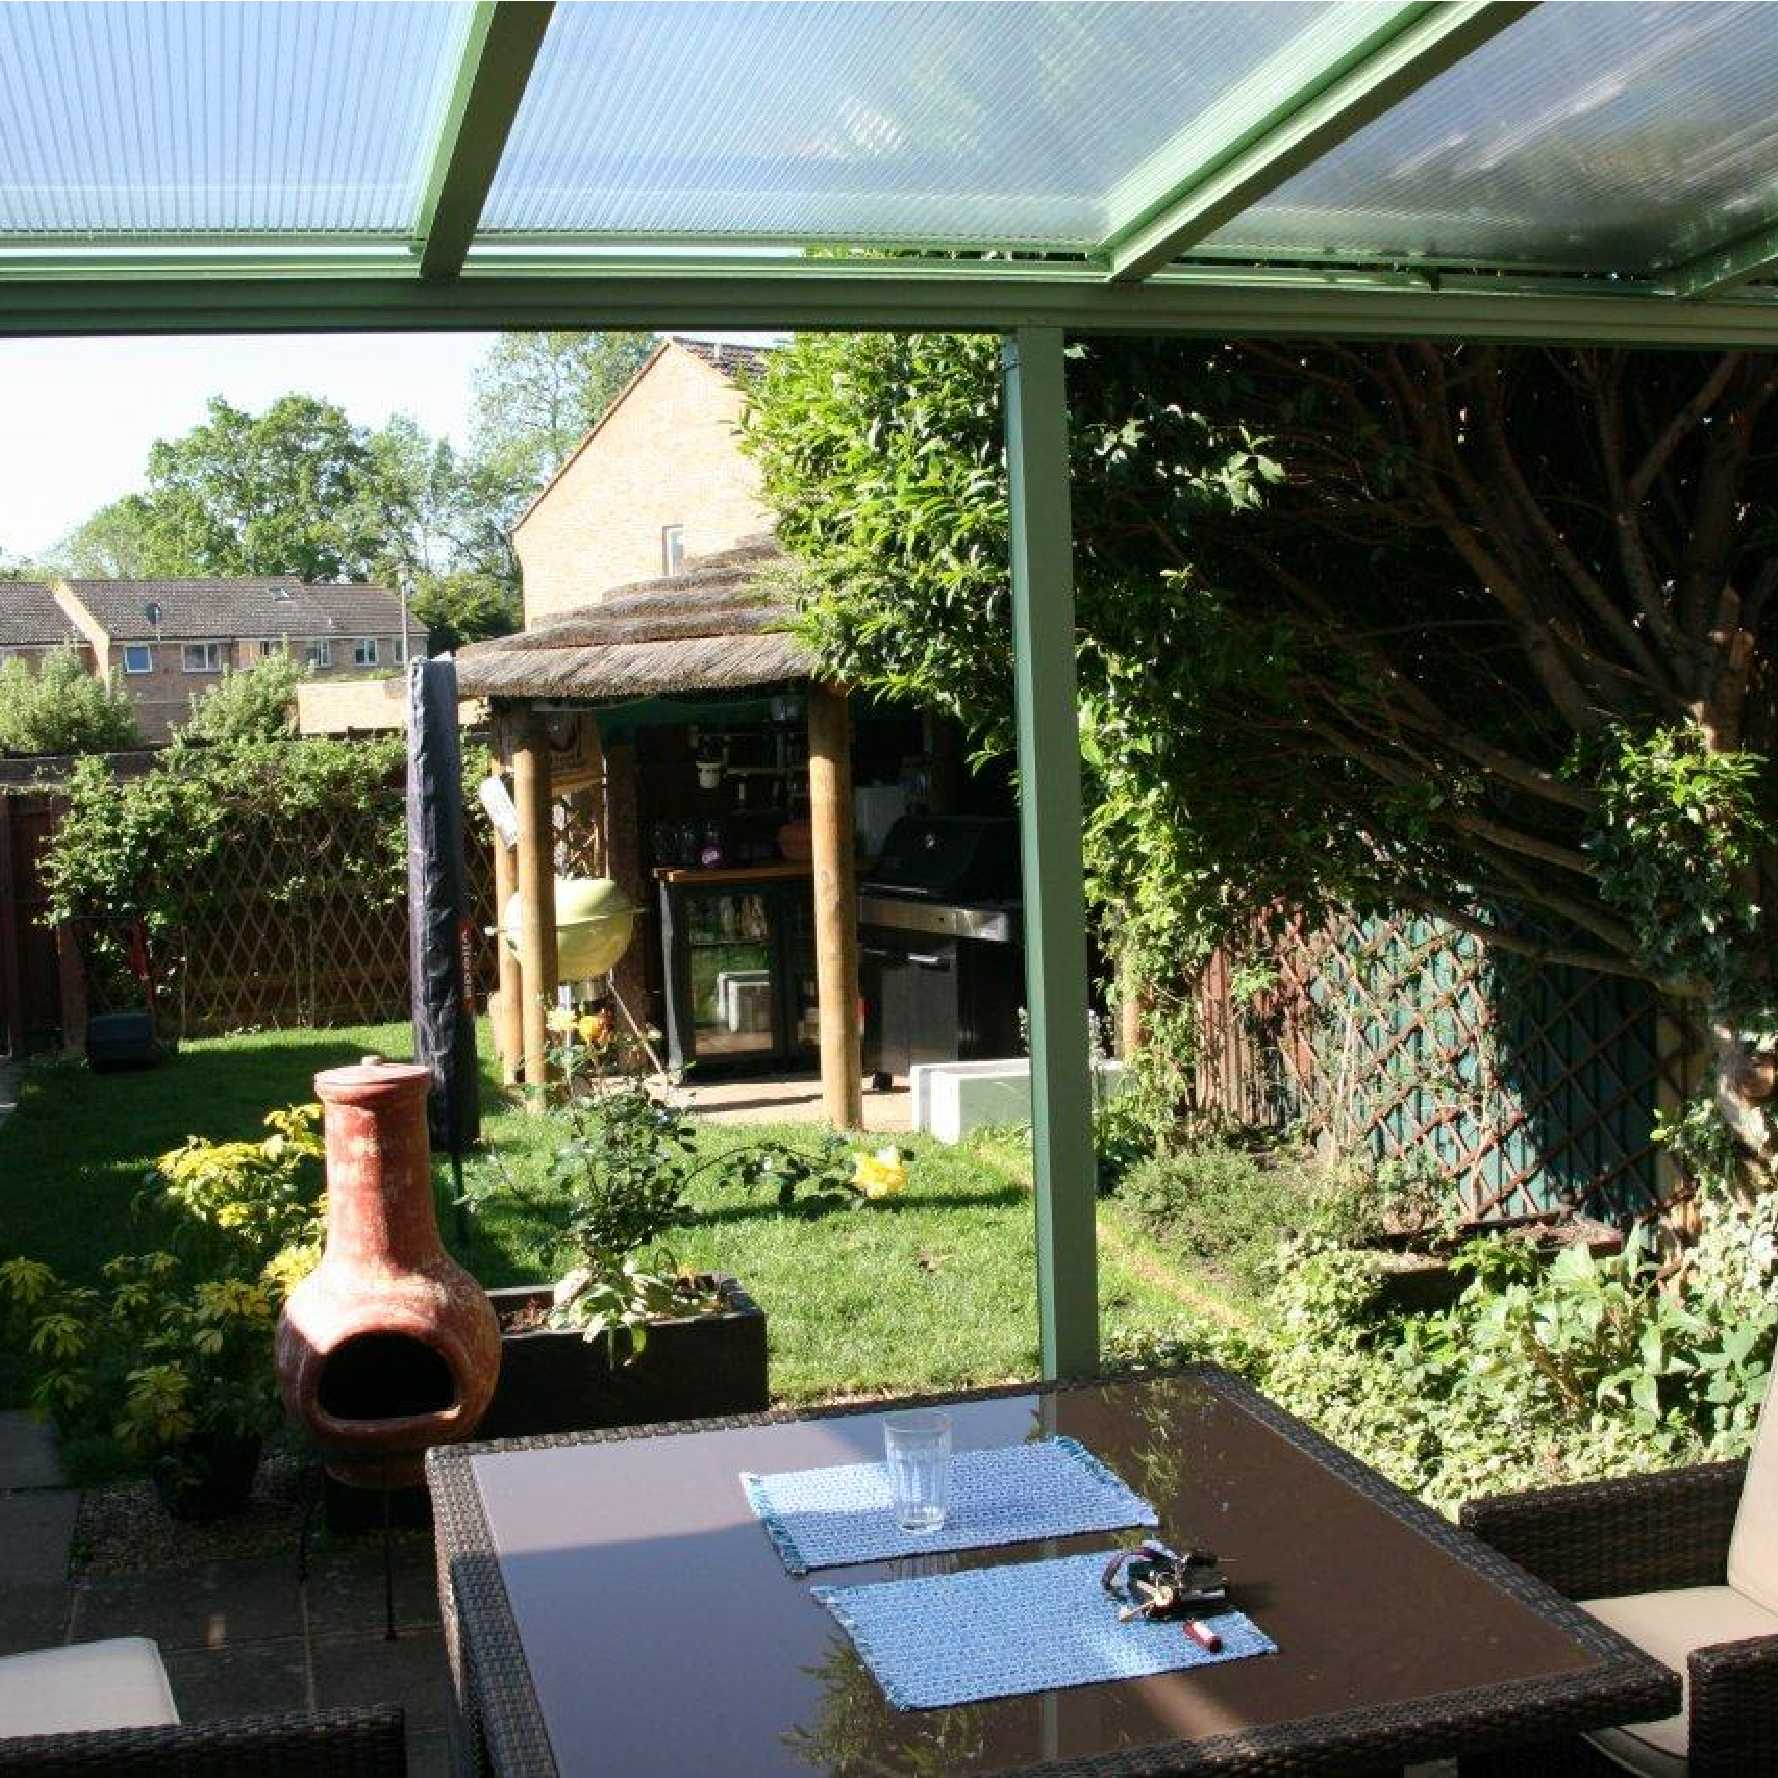 Affordable Omega Smart Lean-To Canopy with 16mm Polycarbonate Glazing - 3.5m (W) x 3.5m (P), (3) Supporting Posts